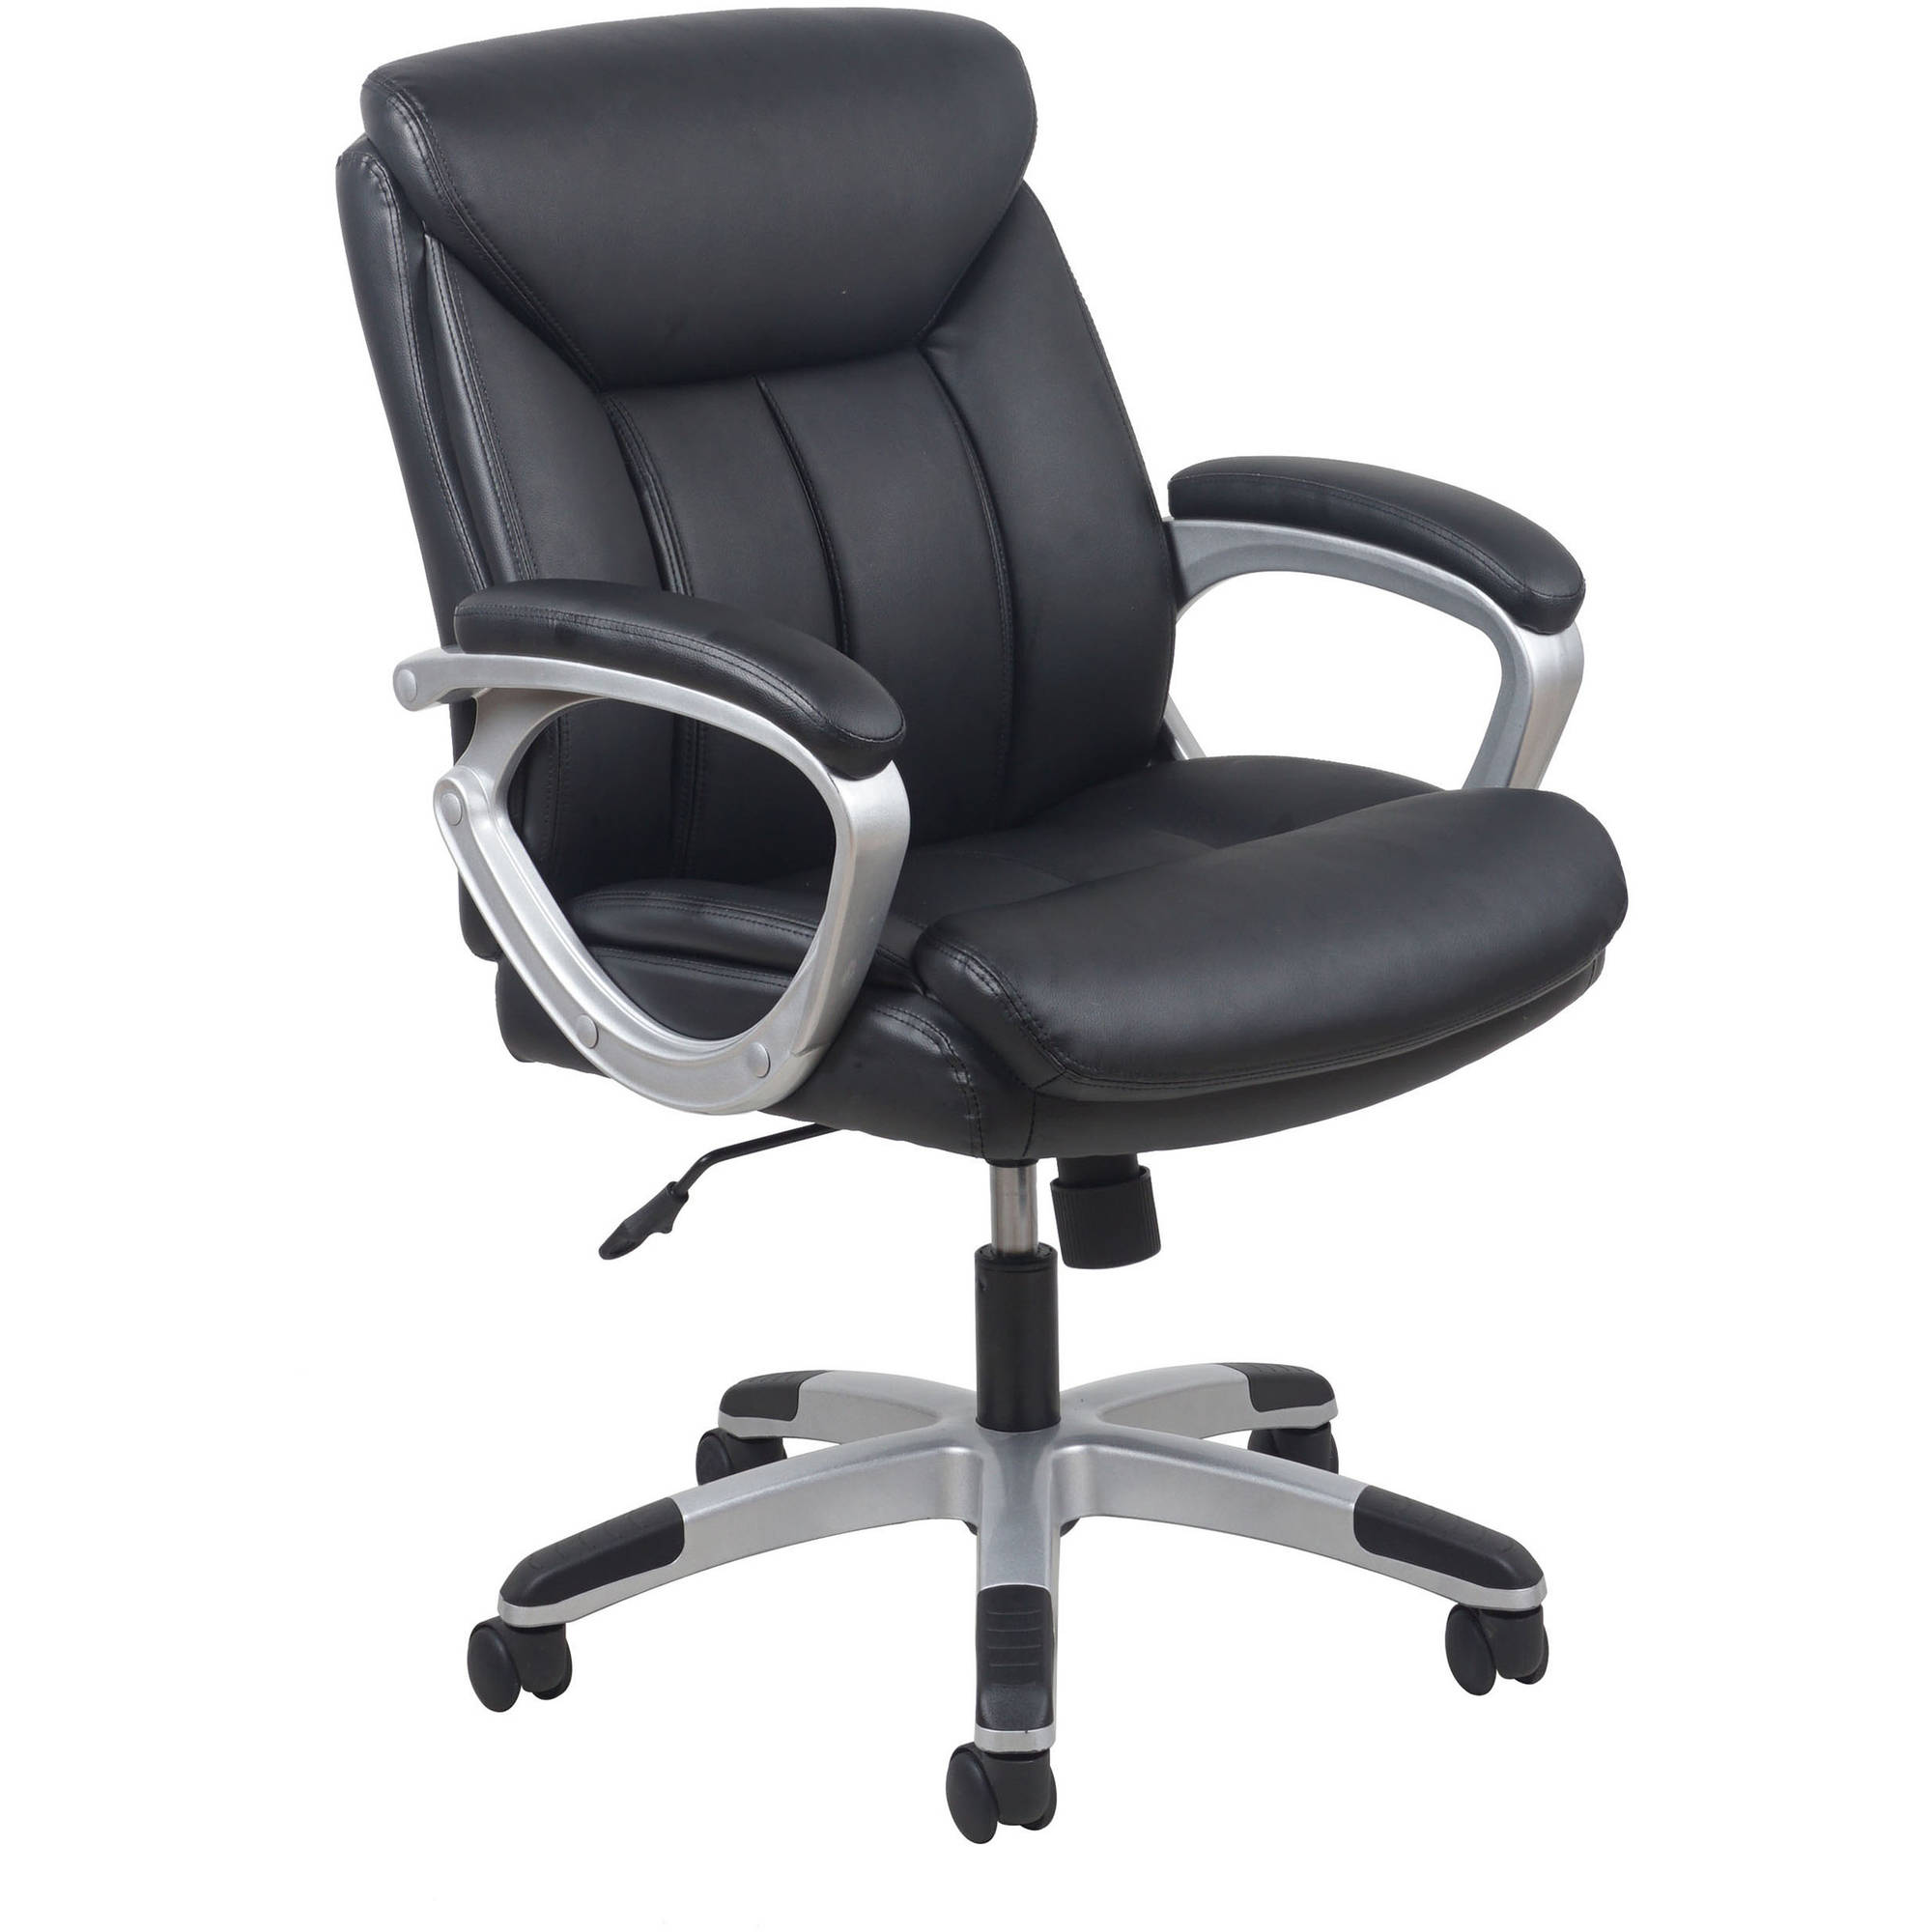 Essentials By OFM Leather Executive Office Chair With Arms, Black/Silver    Walmart.com